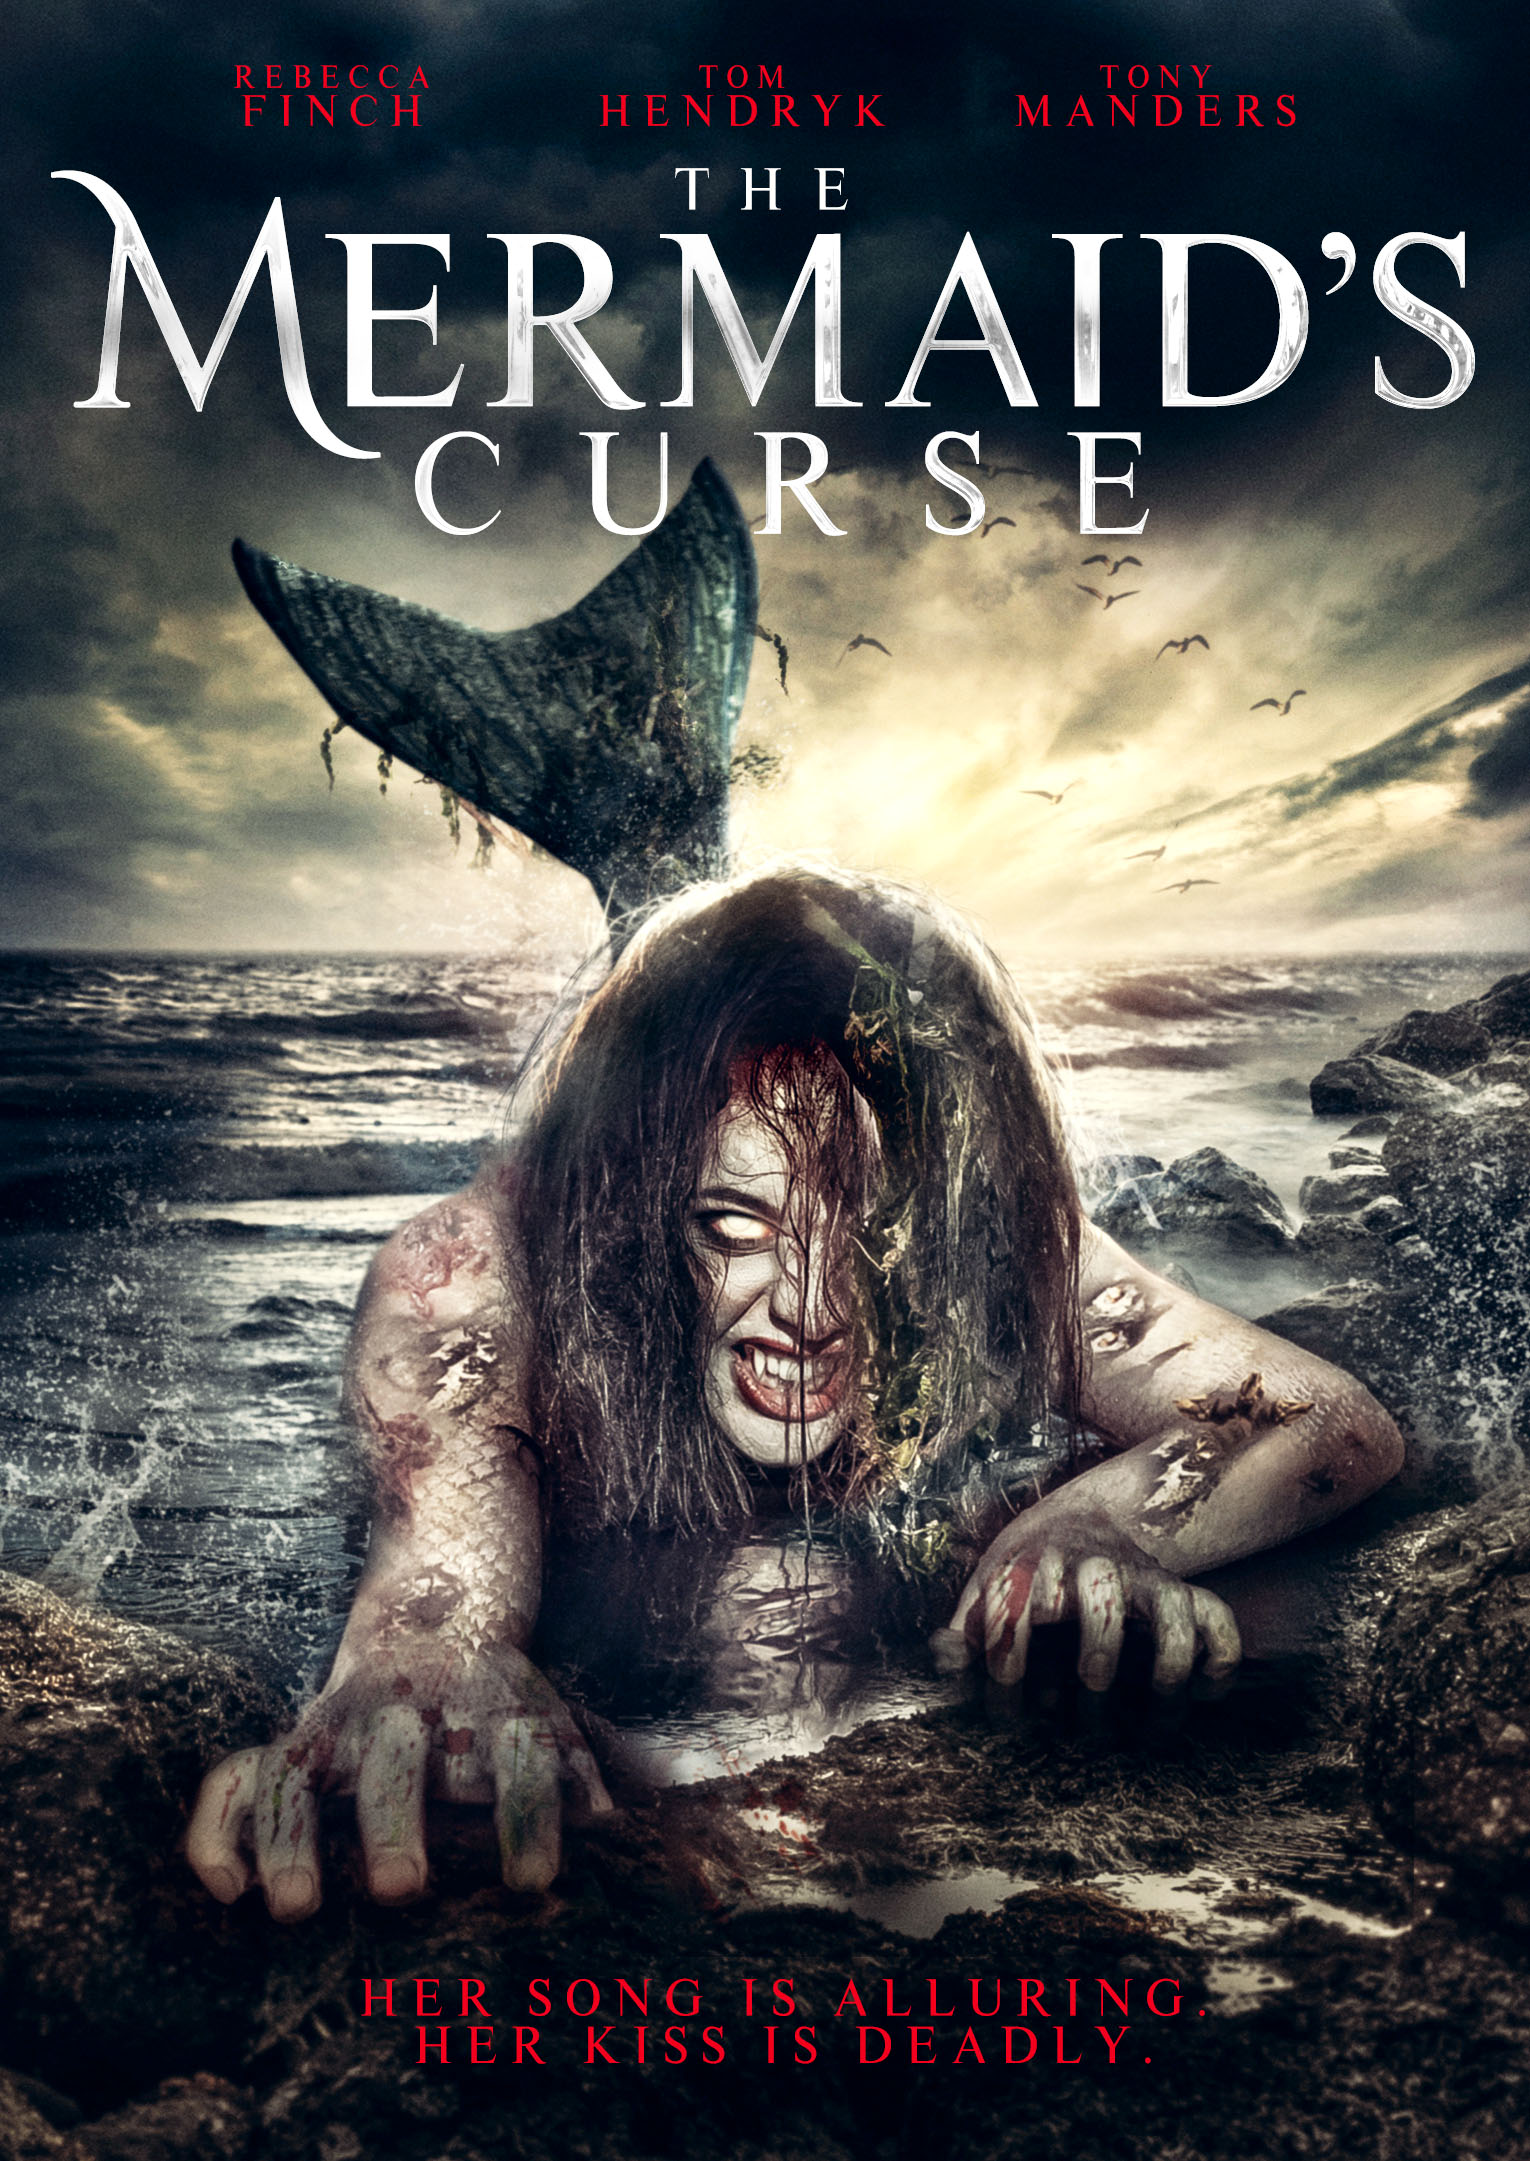 The Mermaid's Curse (Hindi Dubbed)